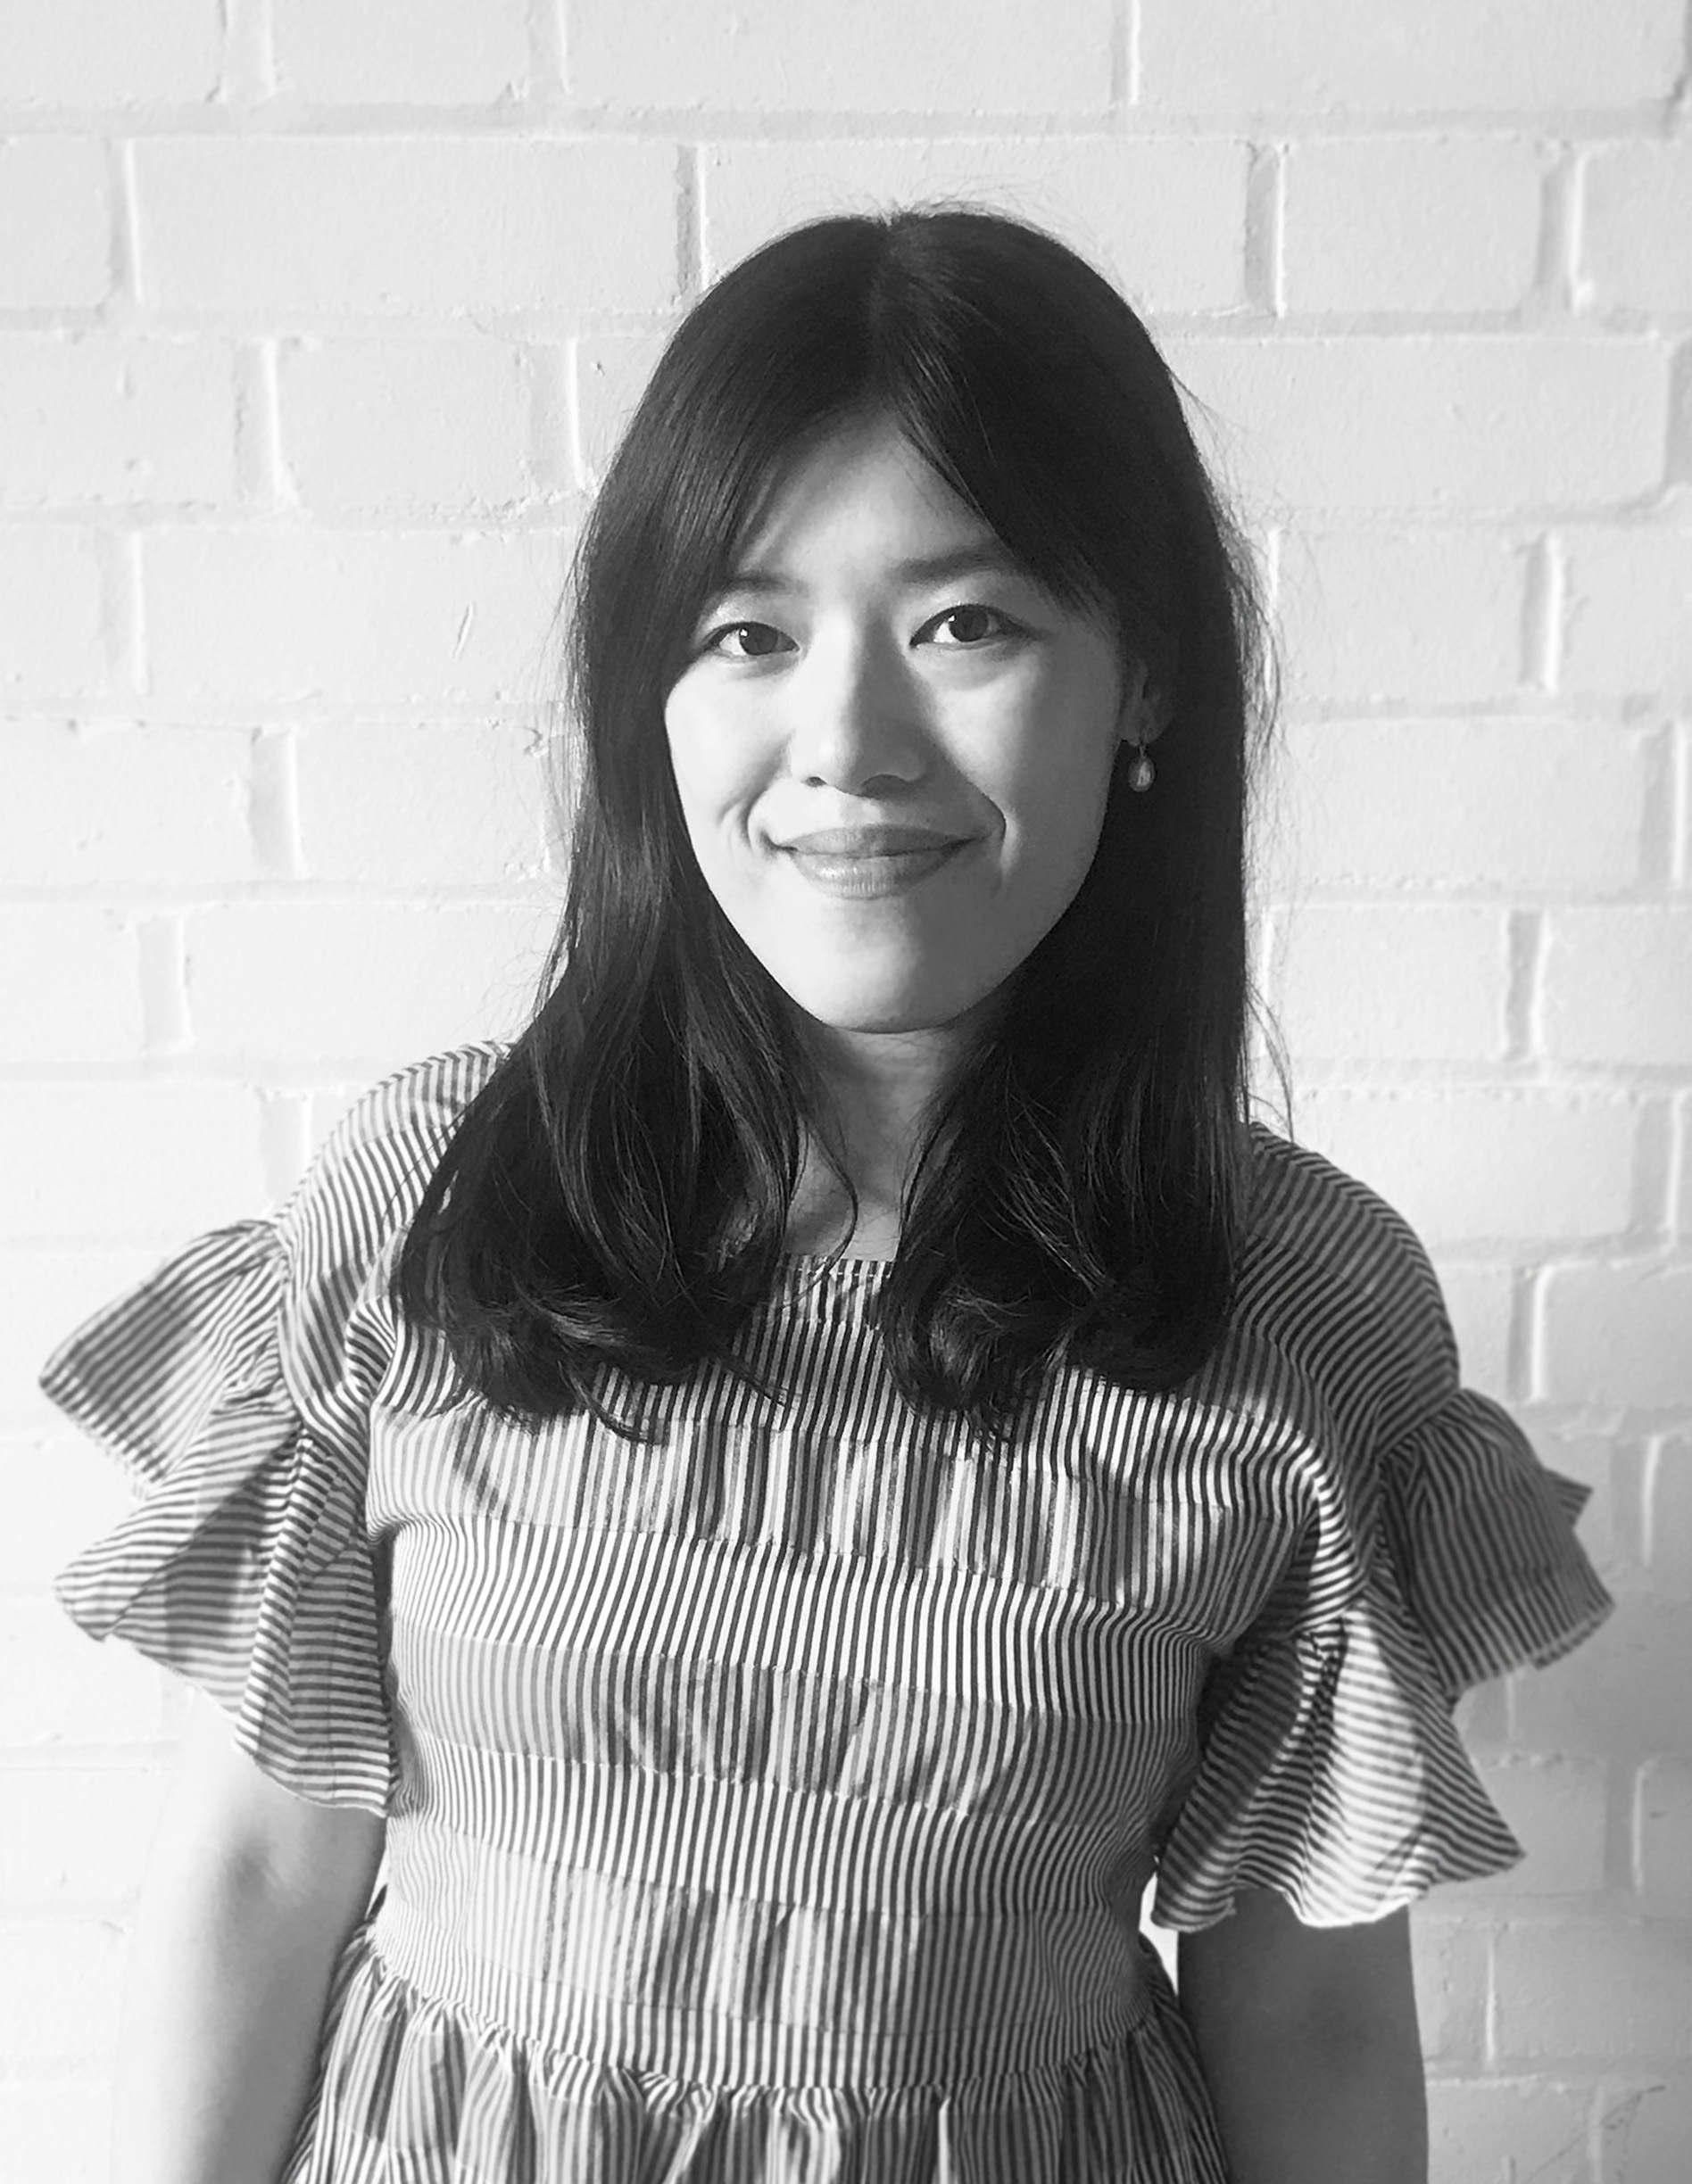 Caroline chen, communications designer   Caroline has worked in different projects worldwide since completing her Master's degree in Glasgow School of Art. Her FIVE years' experience includes publishing, media, fashion industries, during which time she has gained business project developments.  She enjoys working closely with clients and the design team, sharing ideas to get the best out of projects. Outside work Caroline loves travelling as well as making handmade crafts, painting and embracing European culture.  QUALIFICATIONS:  2012-2013 MA COMMUNICATION DESIGN, THE GLASGOW SCHOOL OF ART, UNIVERSITY OF GLASGOW IN GLASGOW, SCOTLAND  2008-2011 BA GRAPHIC COMMUNICATIONS AND DIGITAL PUBLISHING, University, UNIVERSITY OF SHIH HSIN IN TAIPEI CITY, TAIWAN   linkedin  .  email caroline